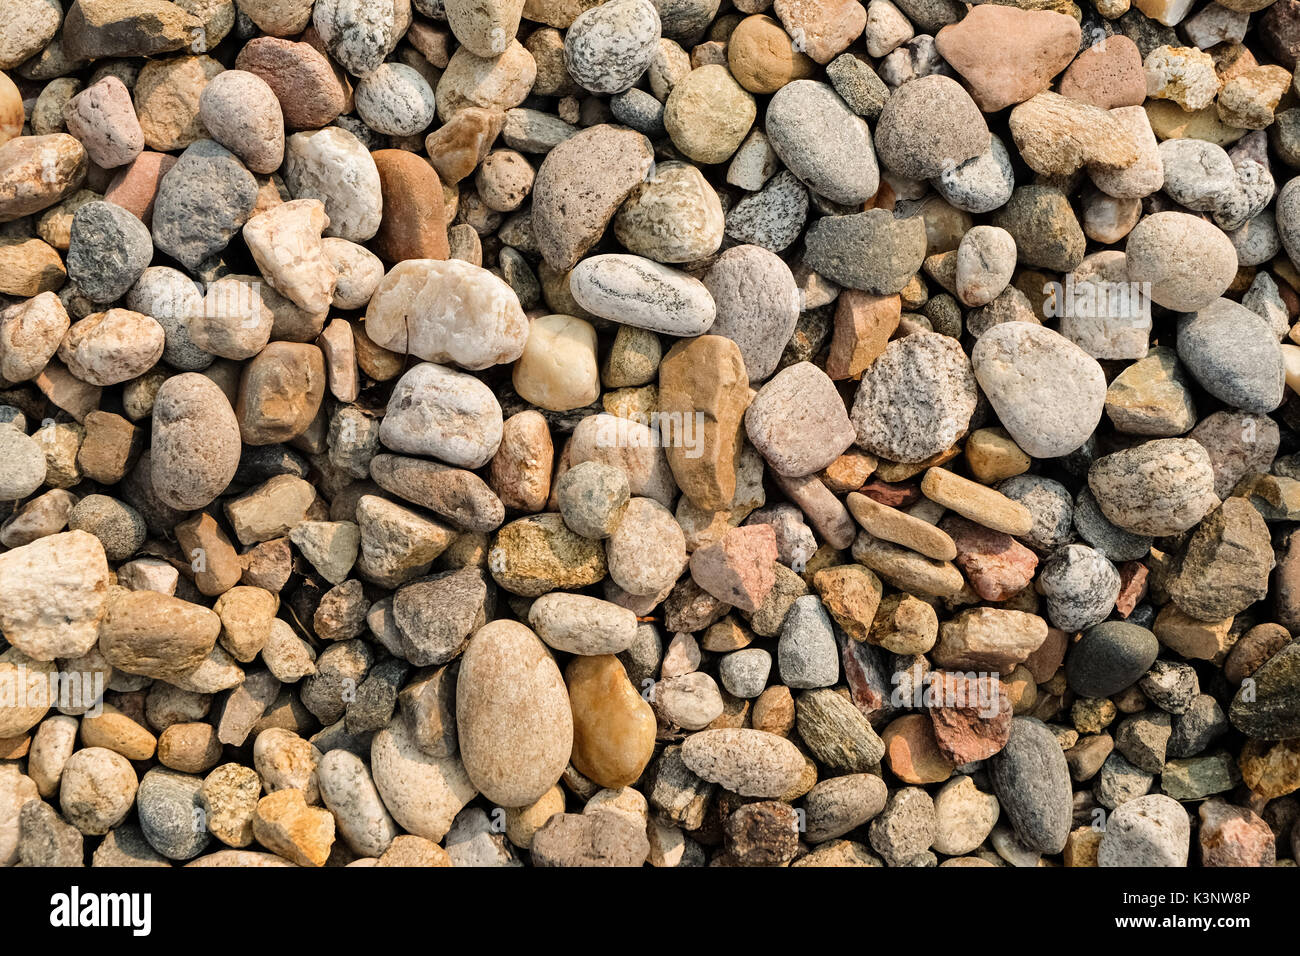 Close up of rounded and polished beach rocks background - Stock Image